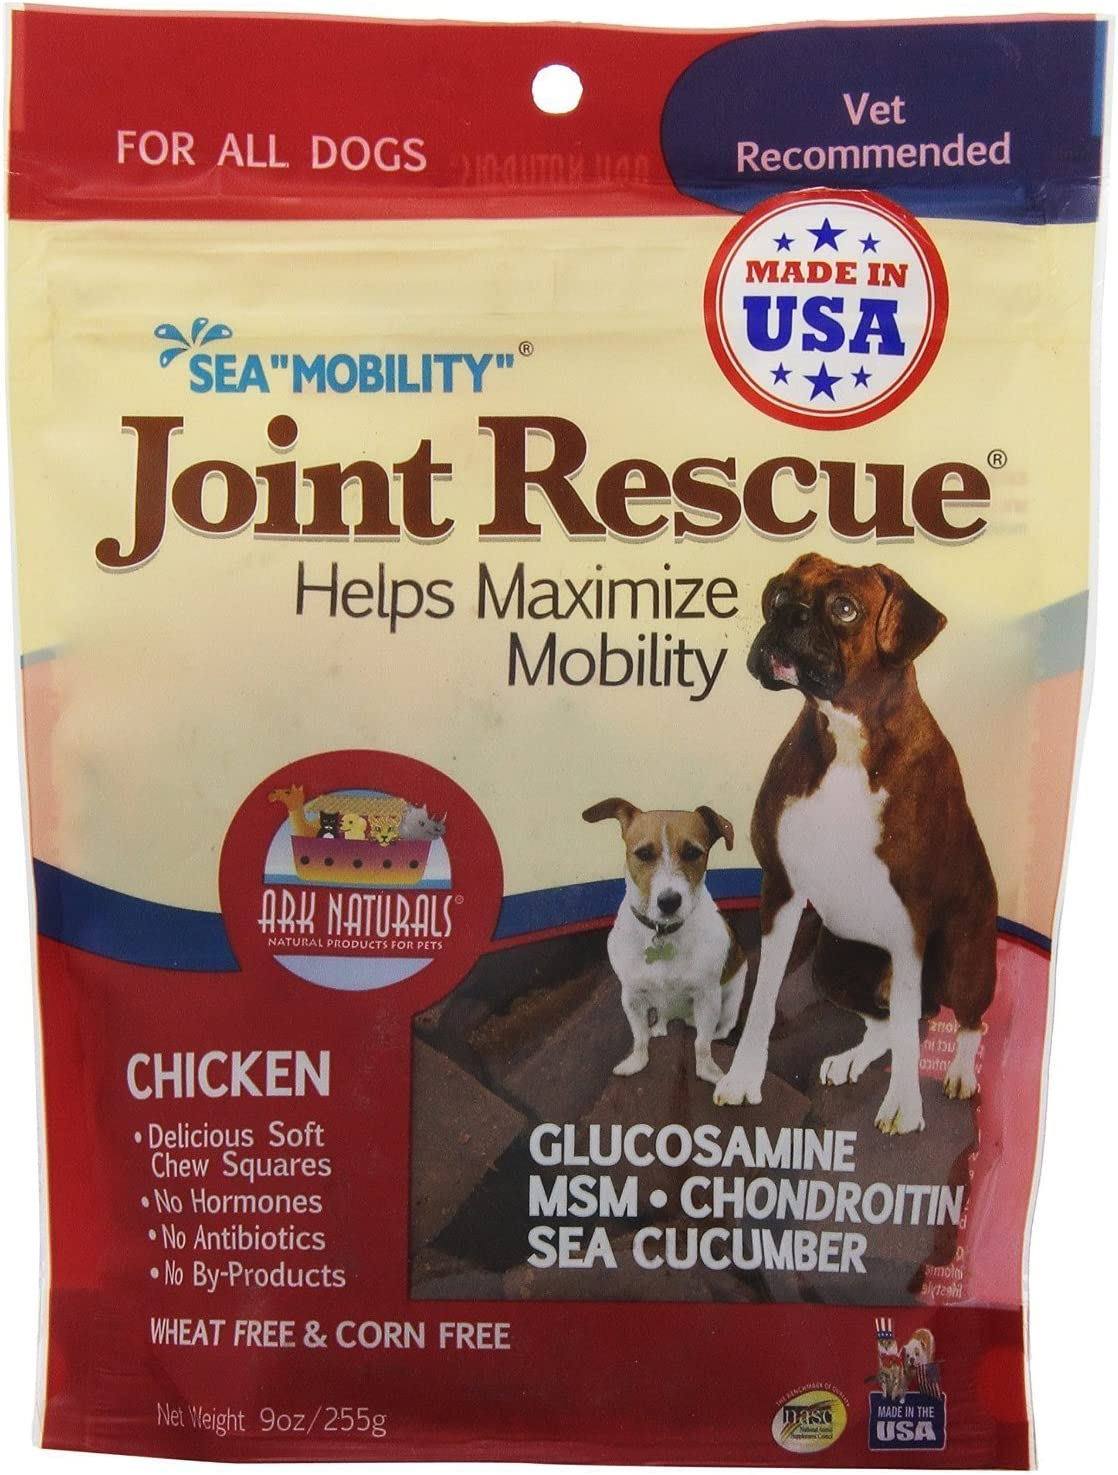 Ark Naturals Sea Mobility – Chicken Jerky 9 Ounce Bag 2 Bags by Sea Mobility